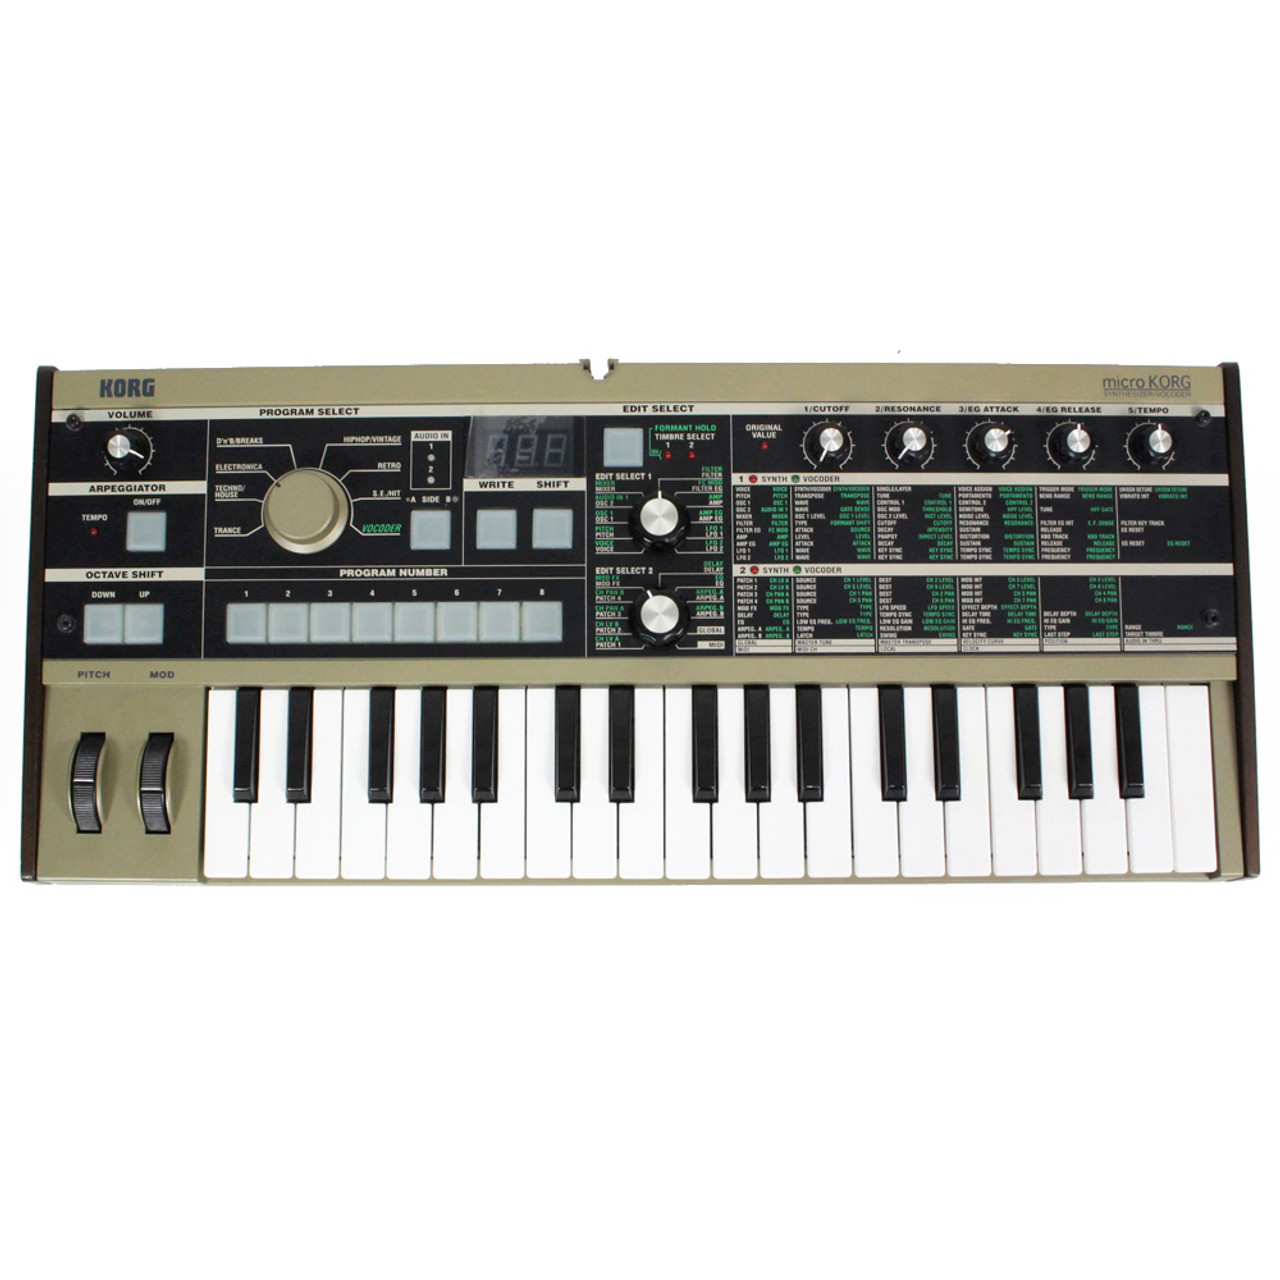 Used Korg microKORG Synthesizer/Vocoder